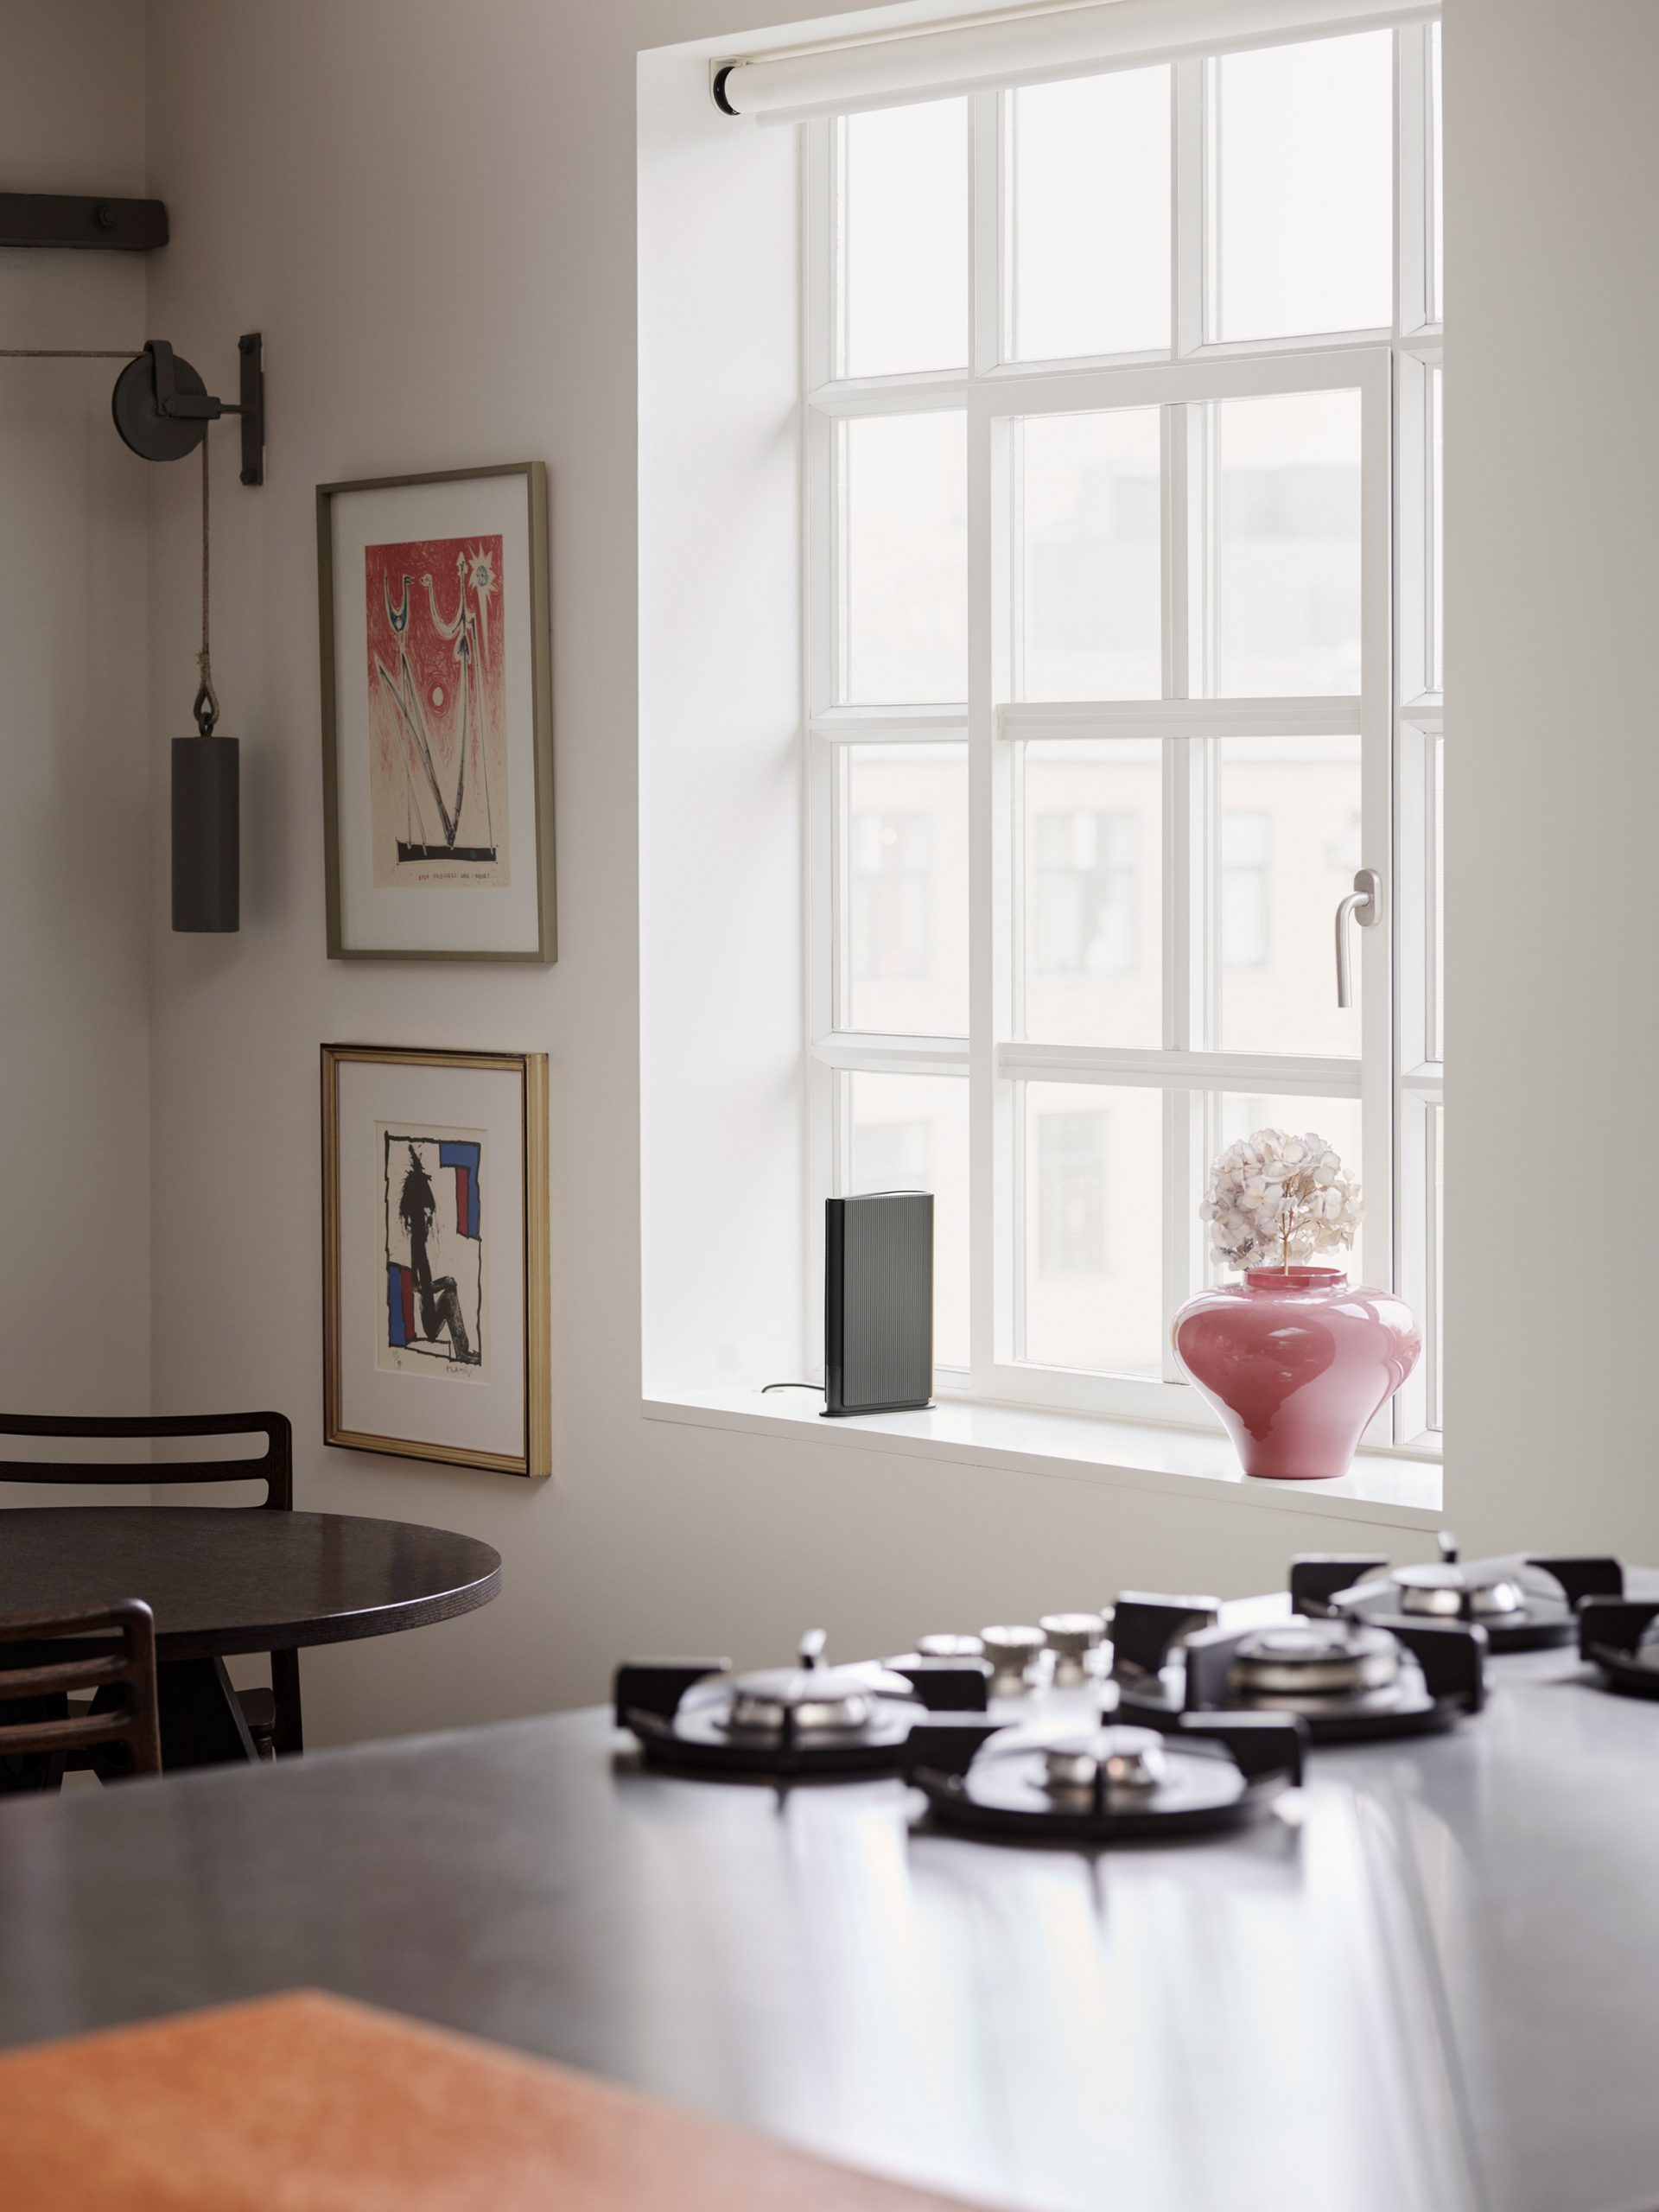 The Beosound Emerge sits on the ledge of a kitchen window